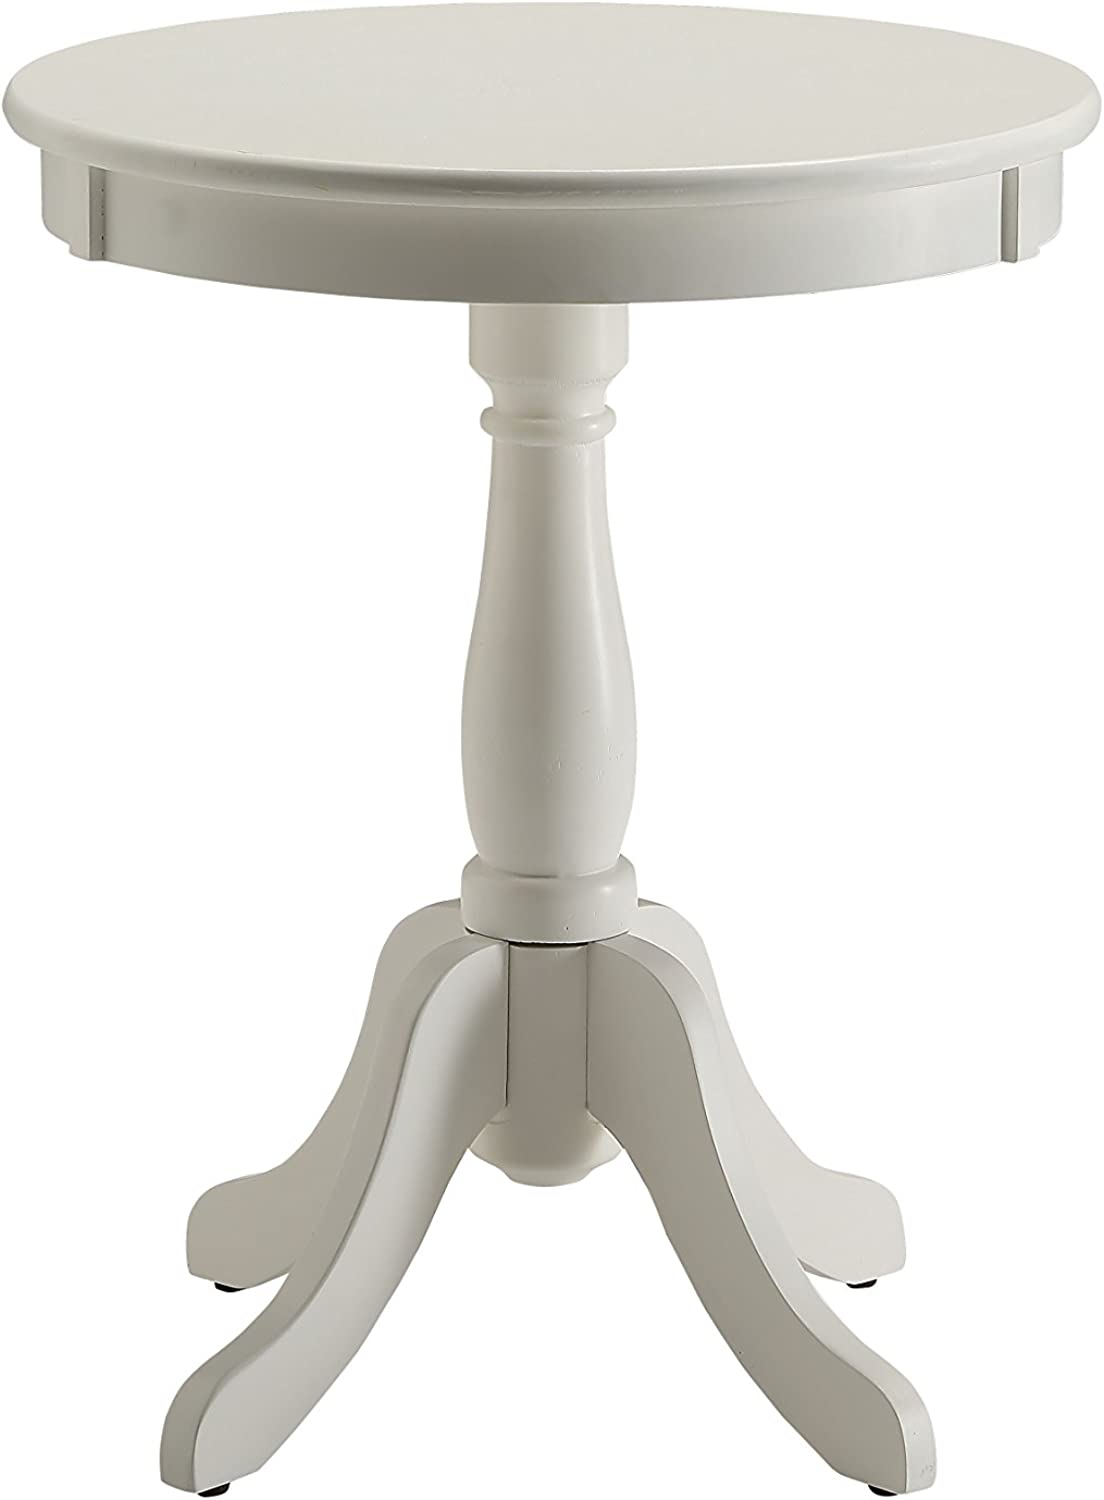 ACME Furniture Acme 82804 Alger Side Table, White, One Size